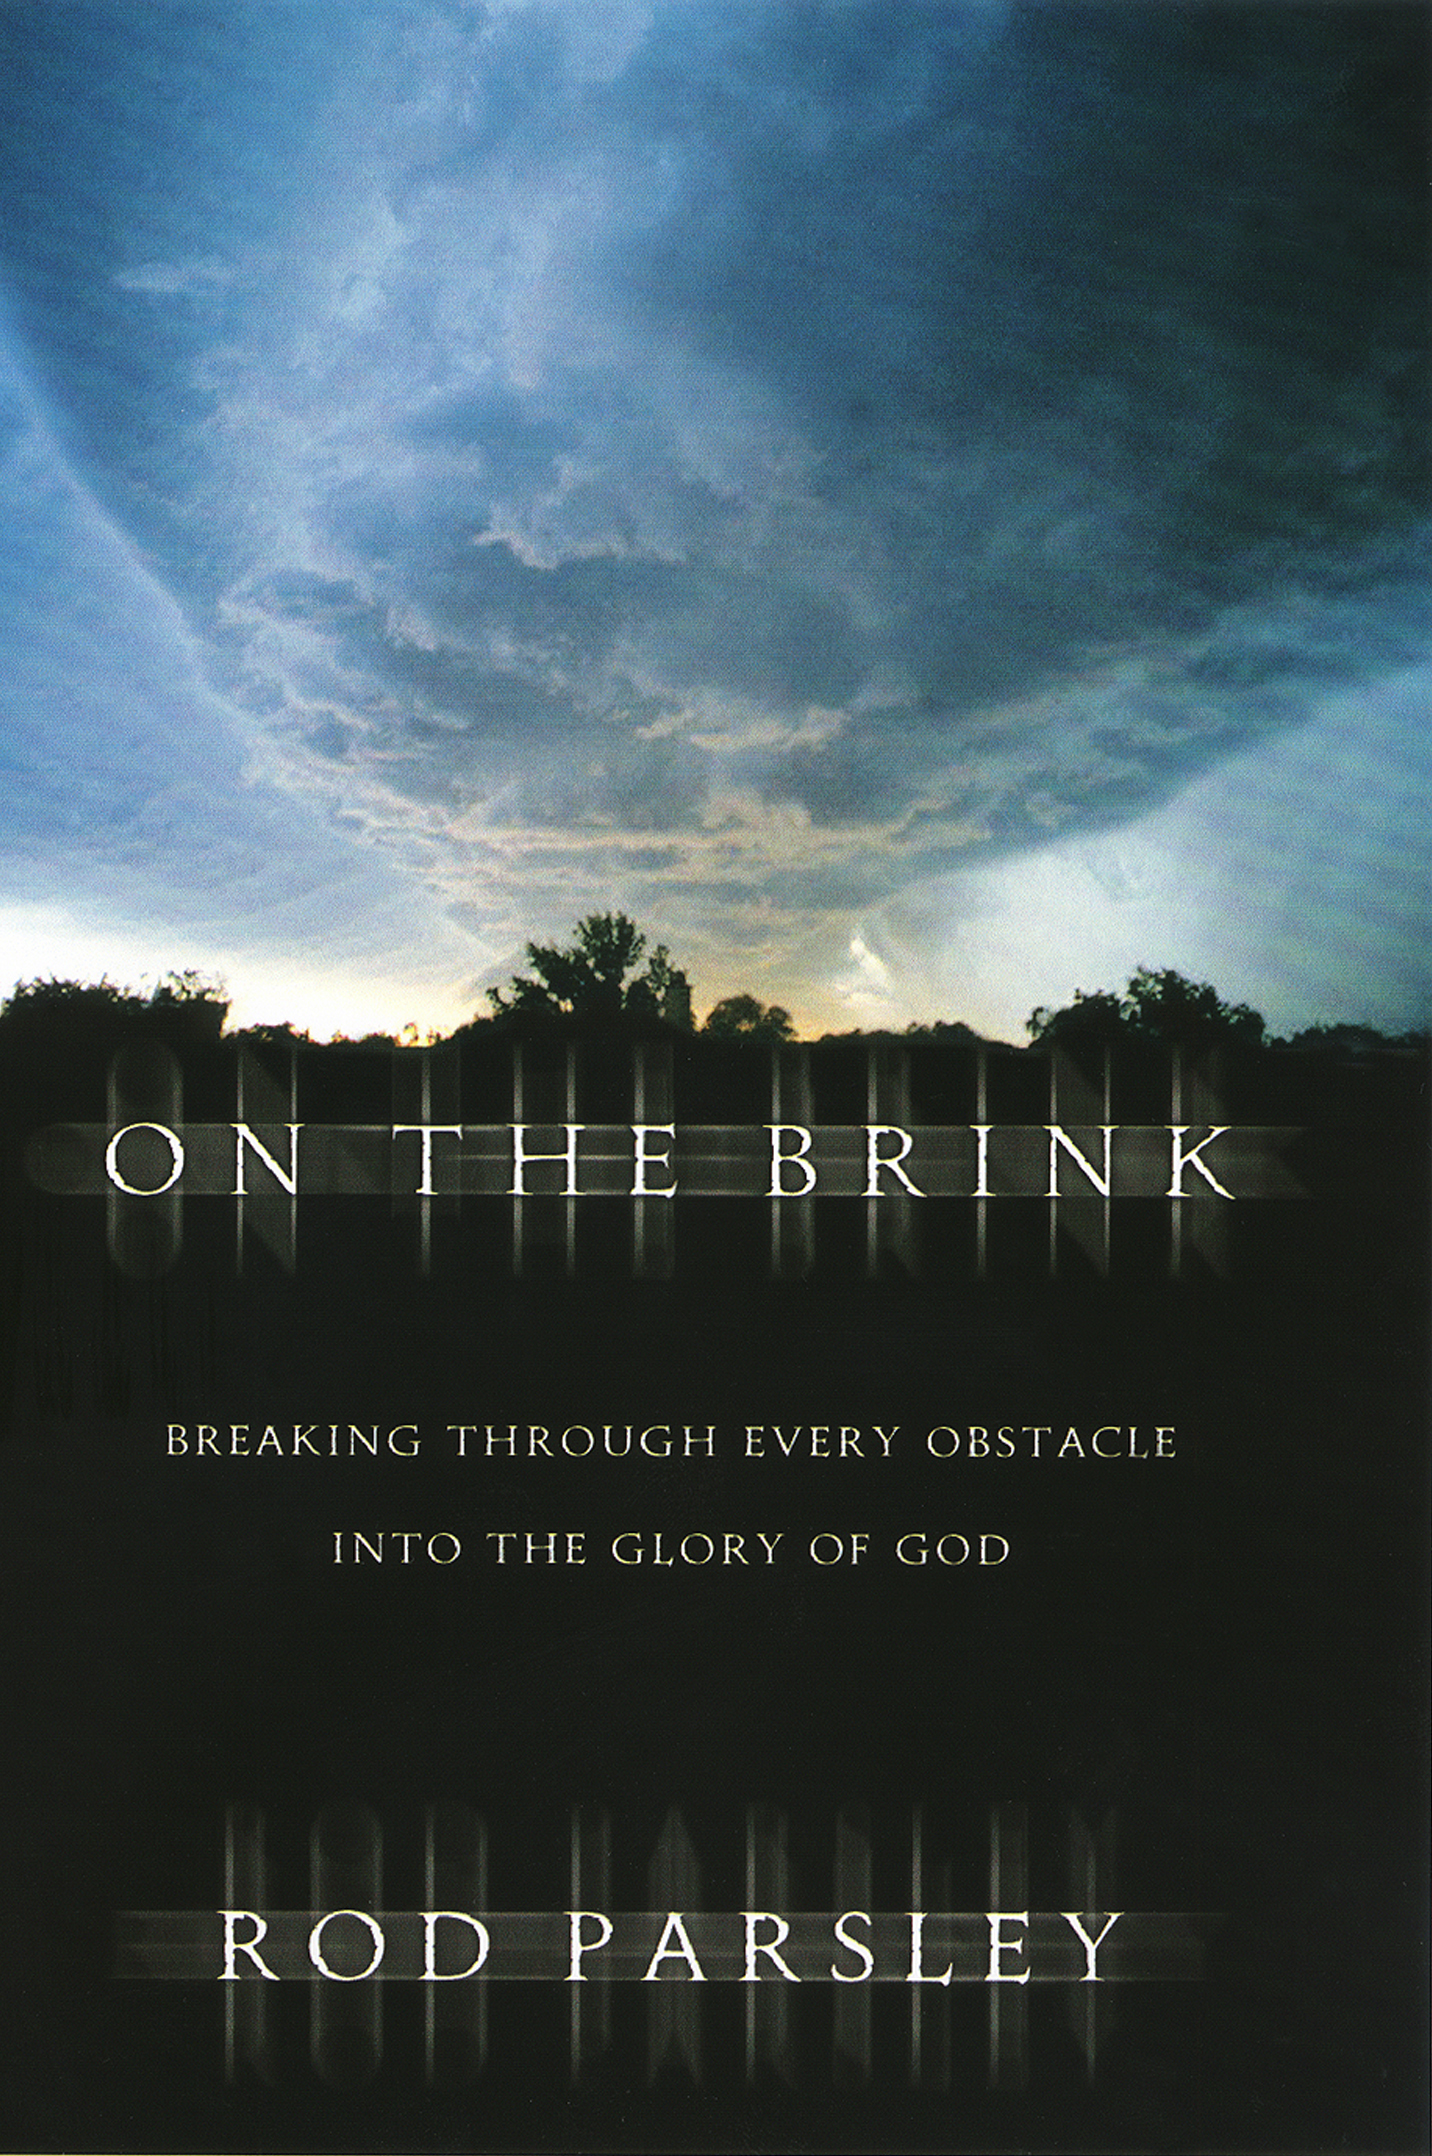 On the Brink: Breaking Through Every Obstacle into the Glory of God